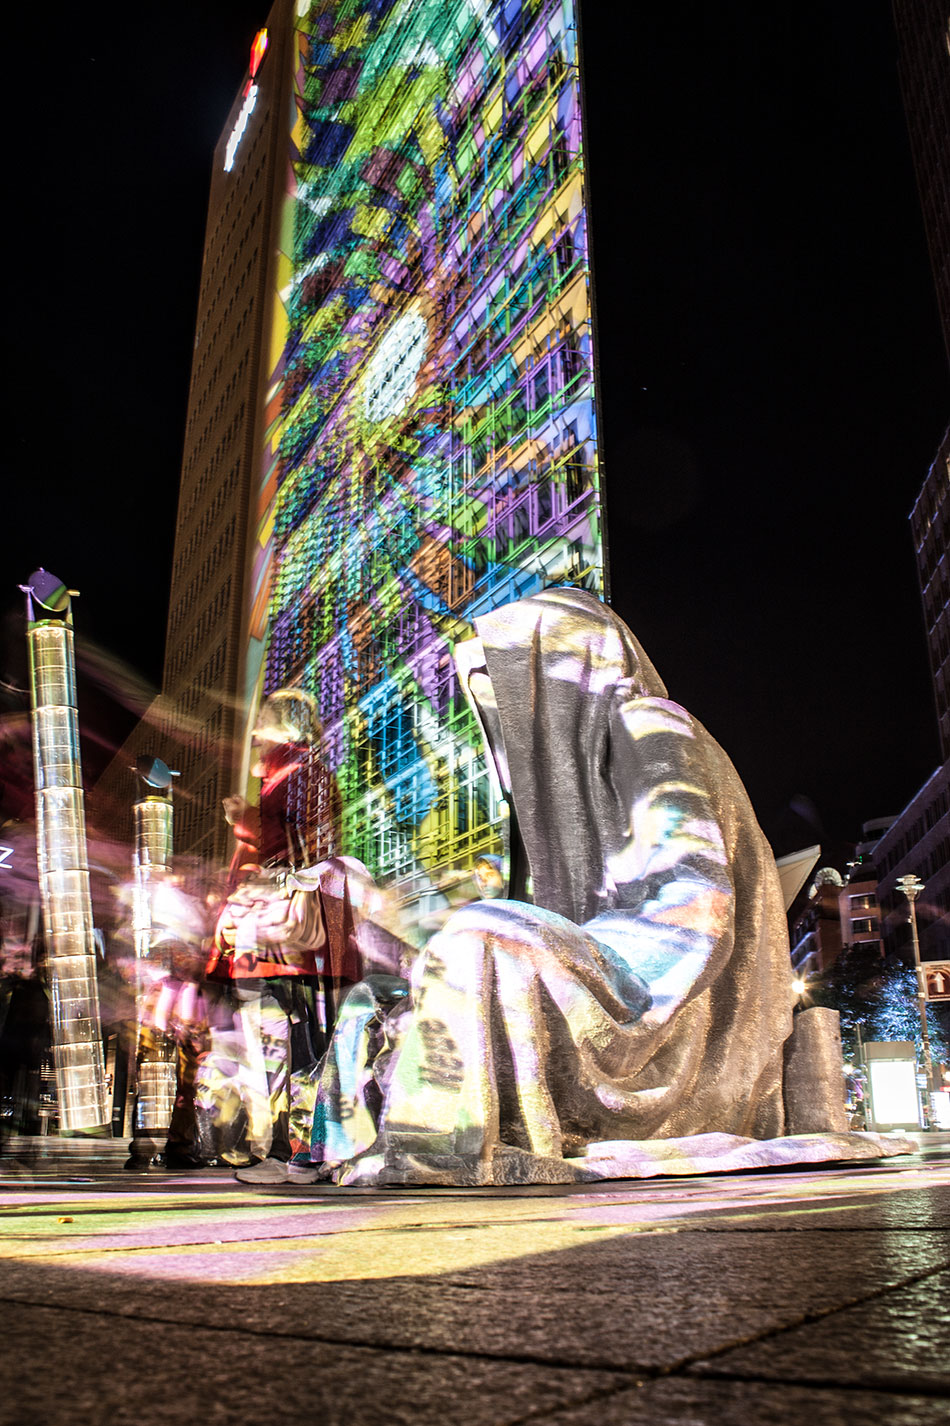 festival-of-lights-berlin-potzdamer-platz-light-art-show-exhibition-lumina-guardians-of-time-manfred-kili-kielnhofer-contemporary-arts-design-sculpture-3212